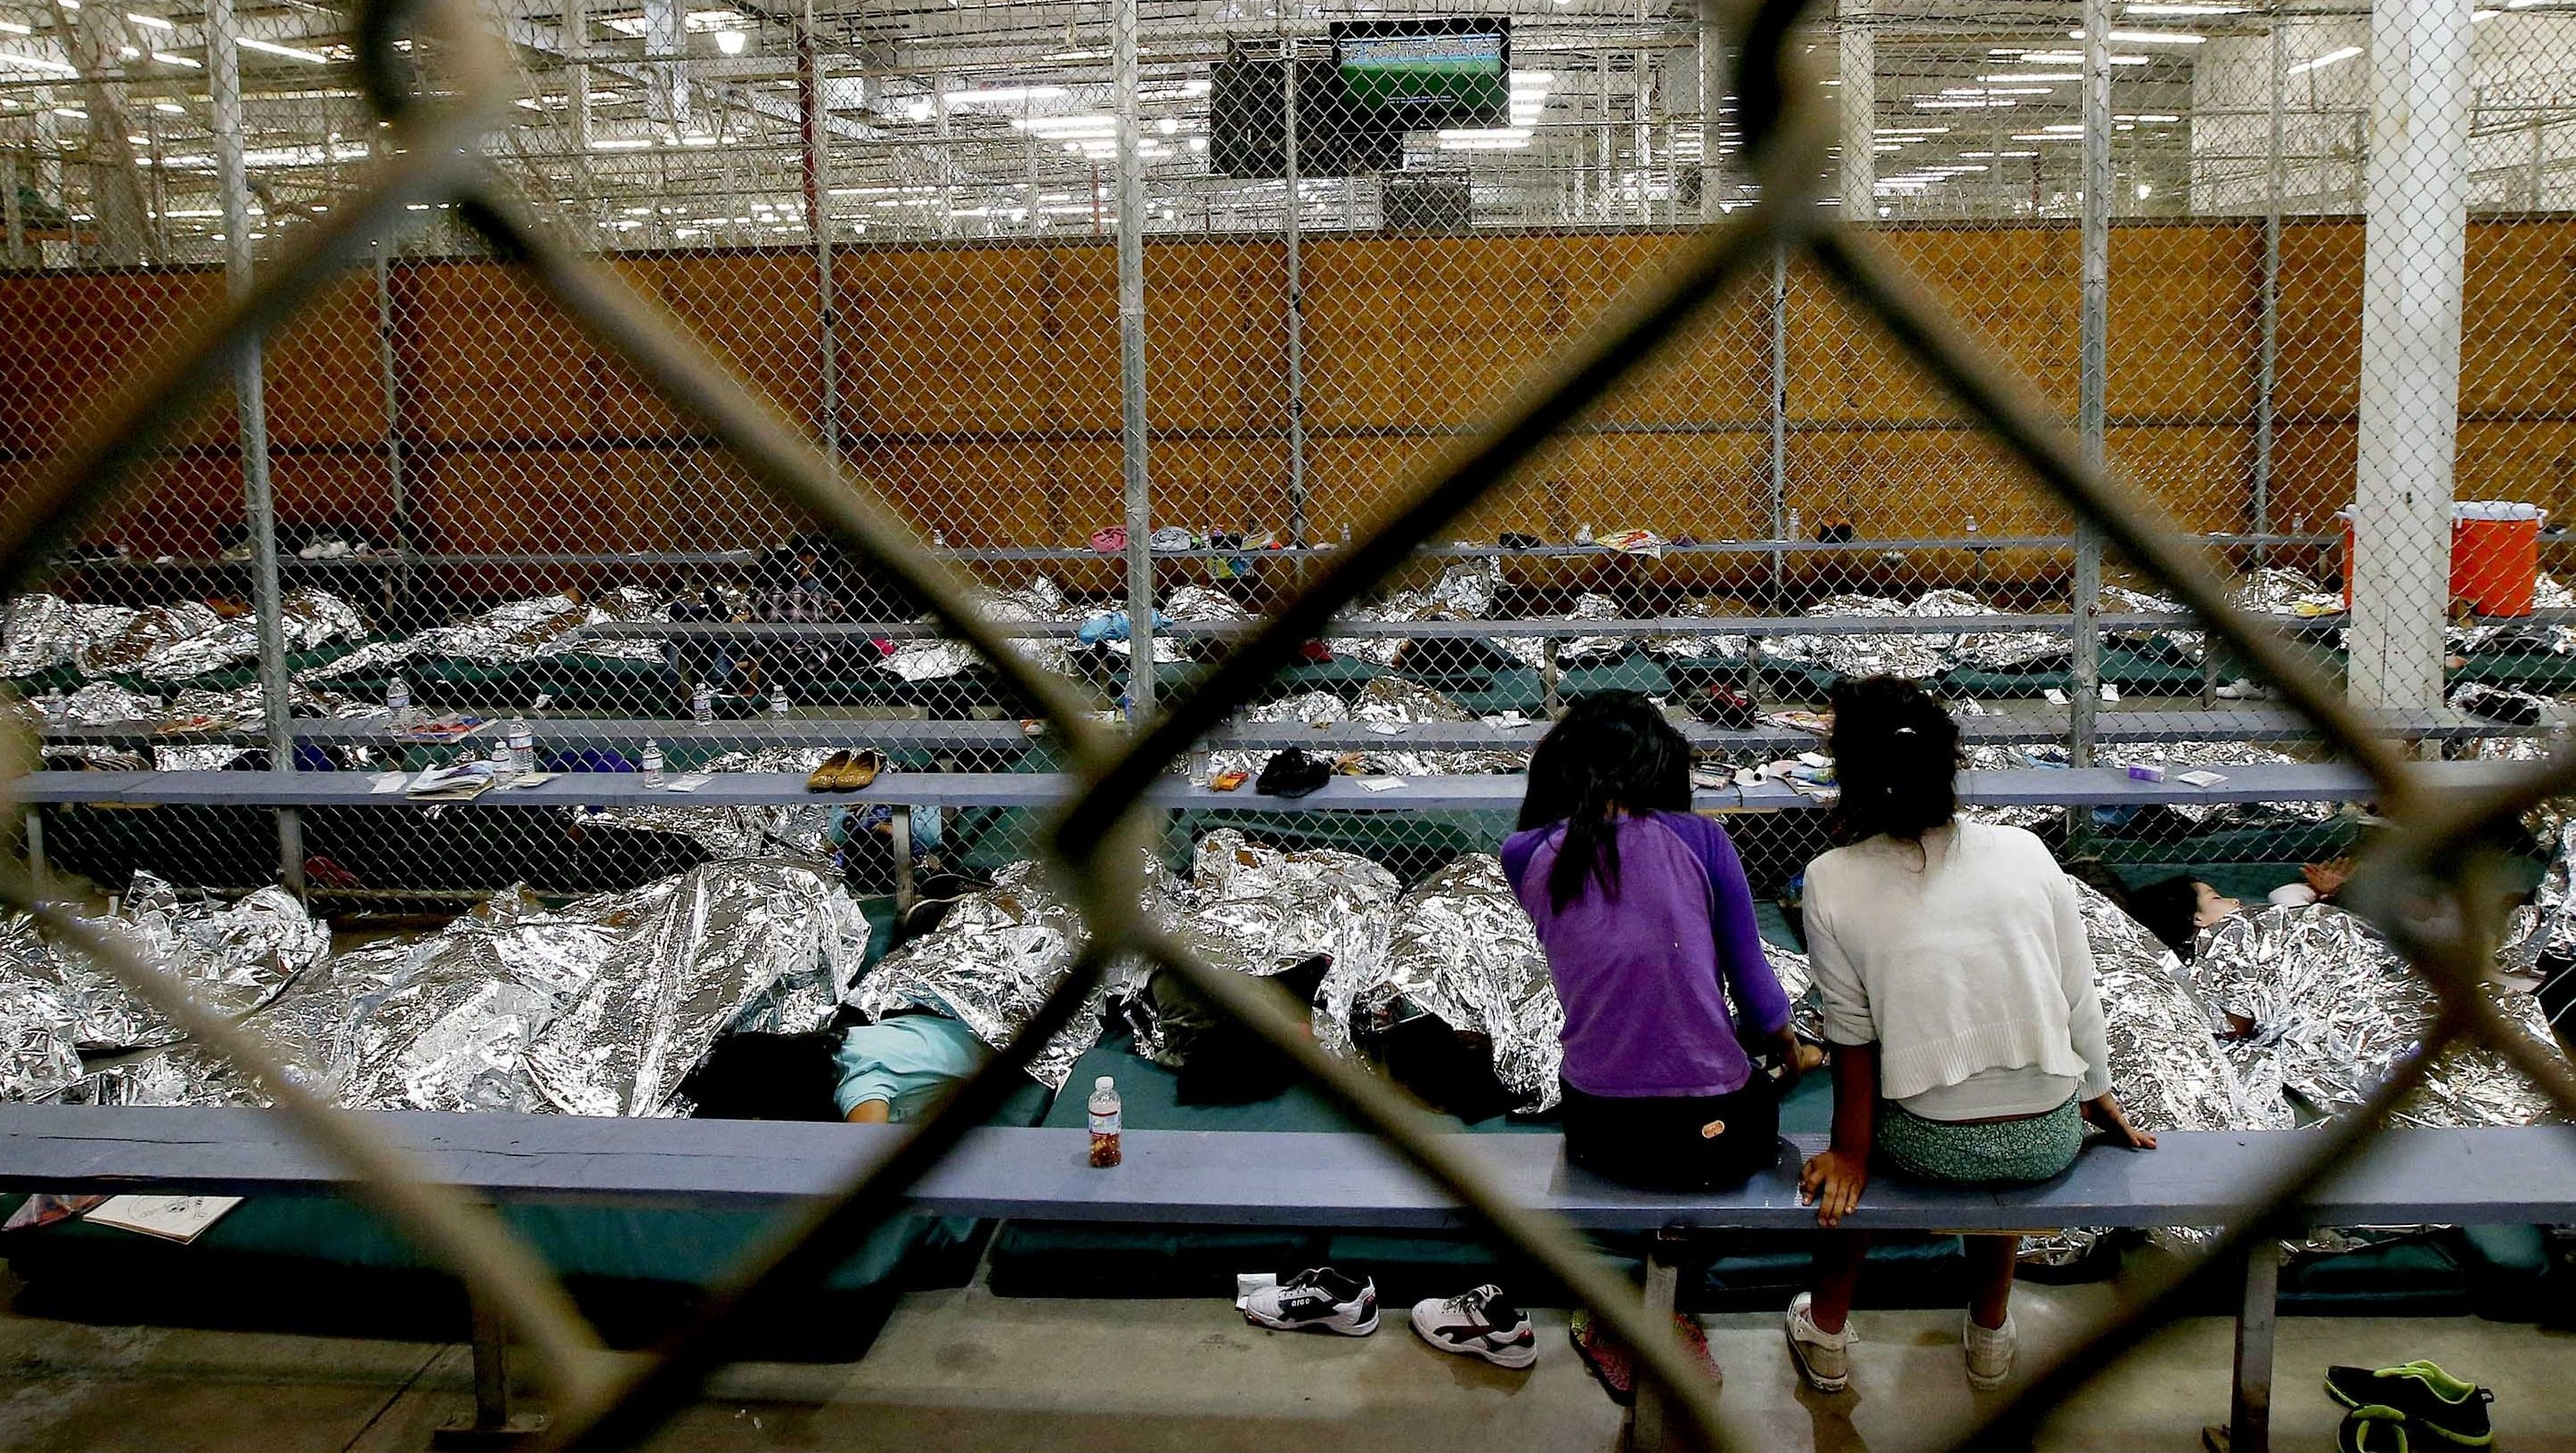 Central American immigrant children are being processed and held at the U.S. Customs and Border Protection Placement Center.